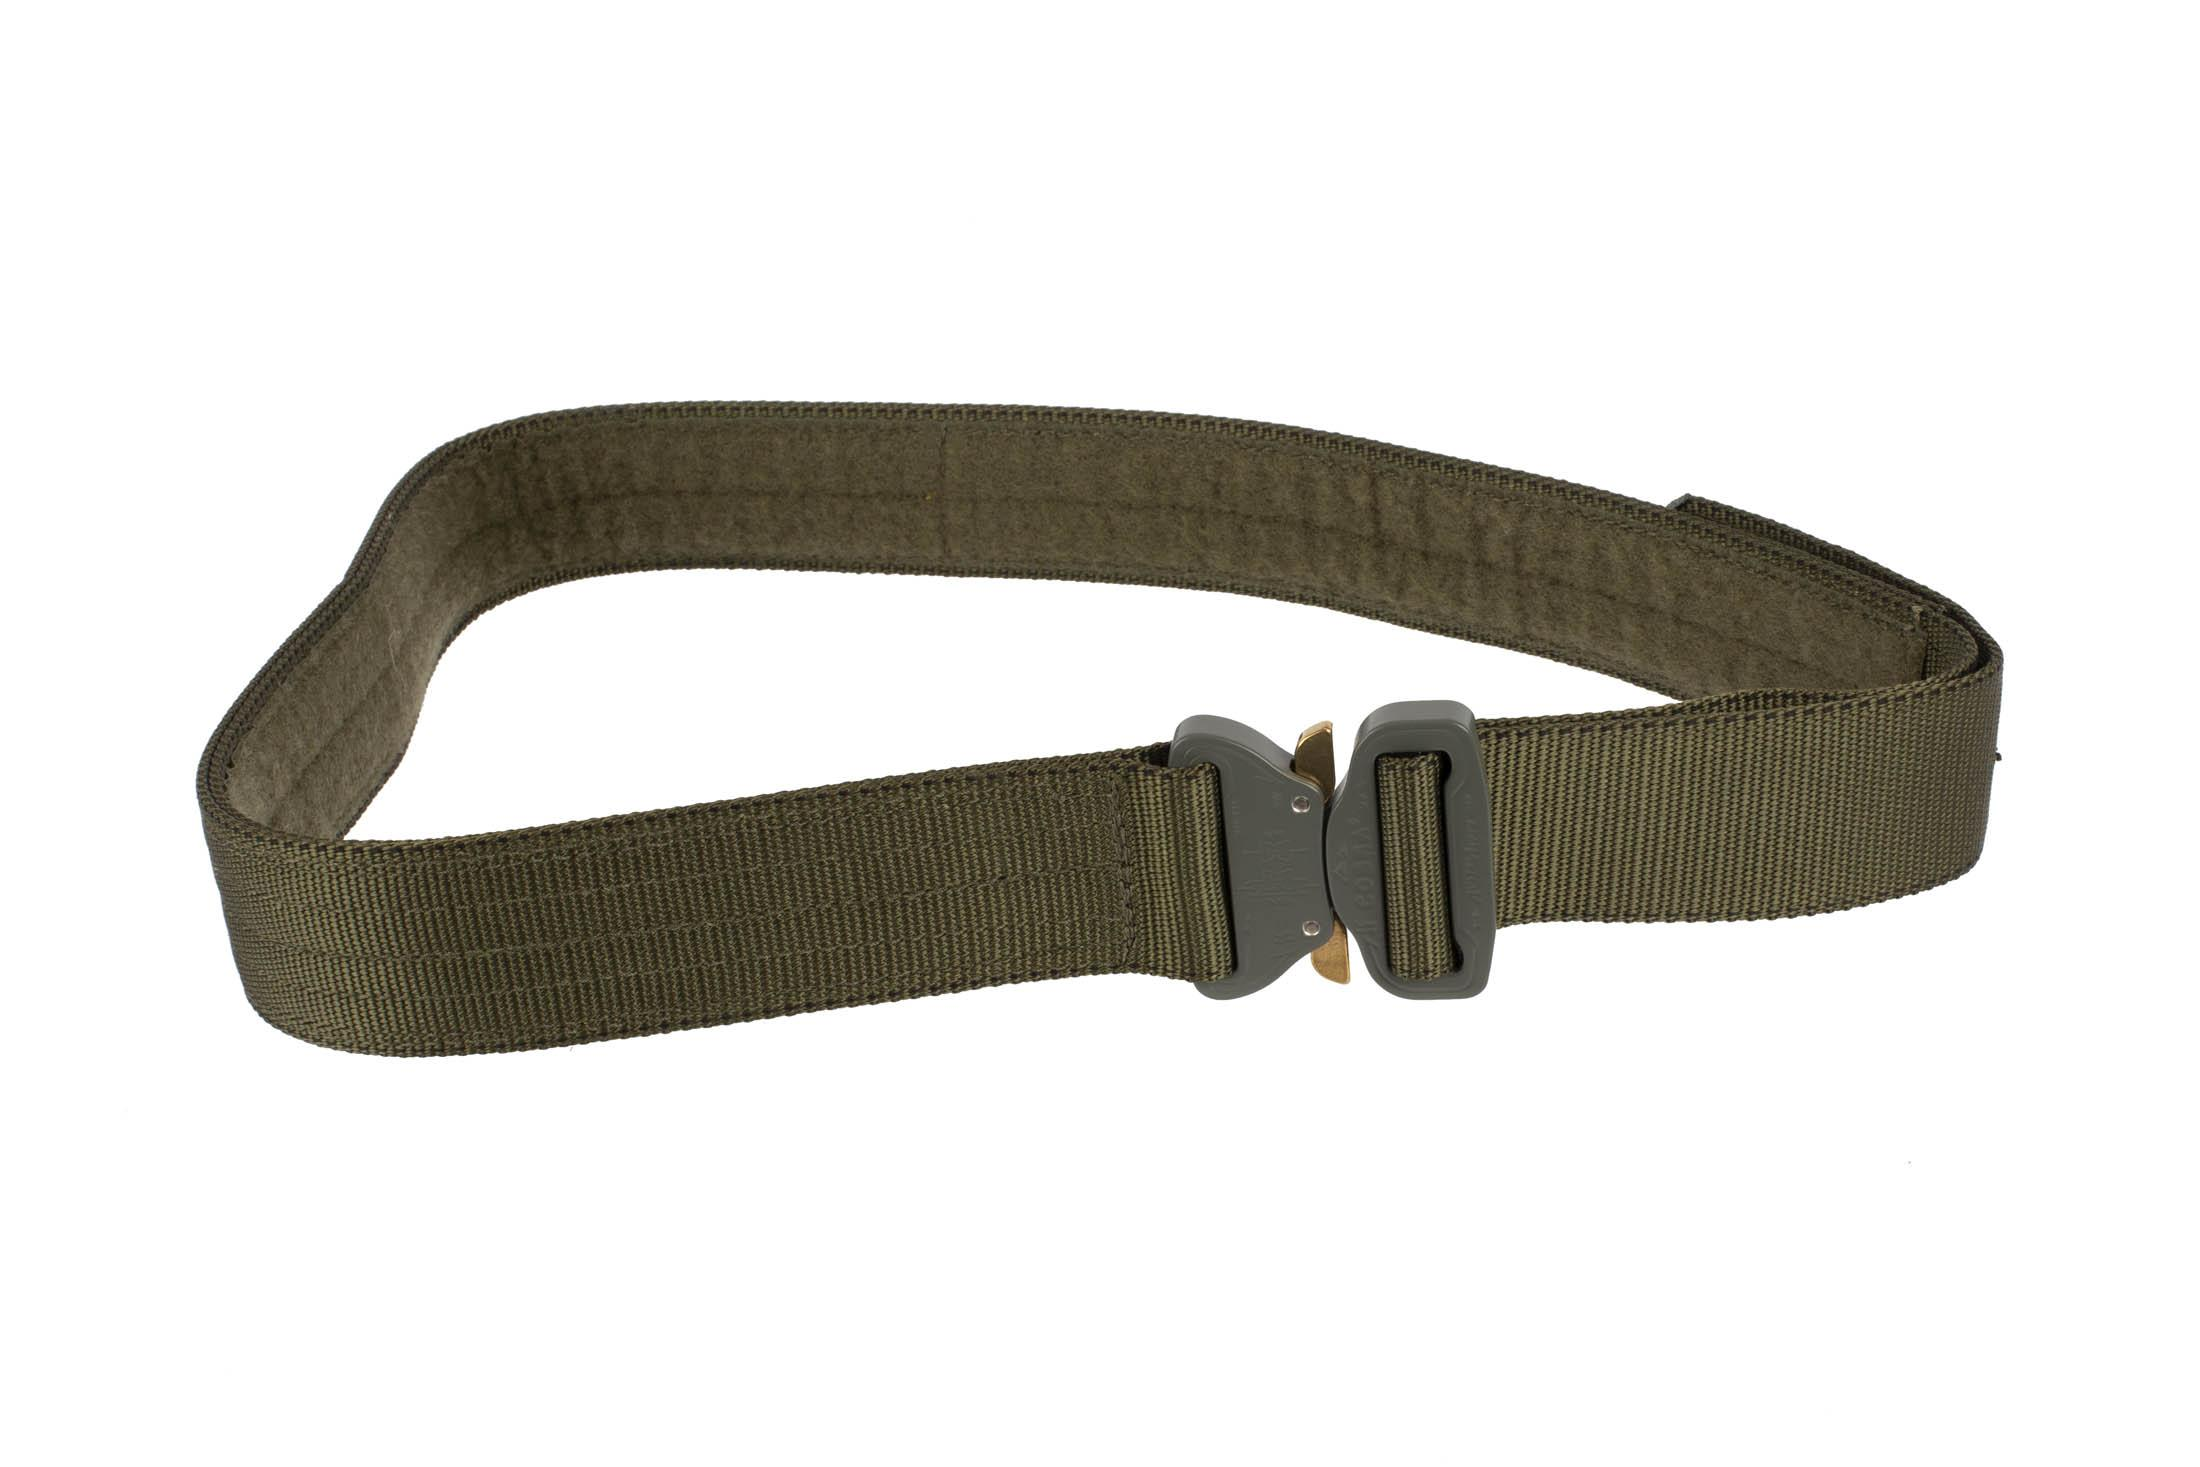 High Speed Gear 1.75in Rigger Belt olive drab green is equipped with a large Cobra Buckle.